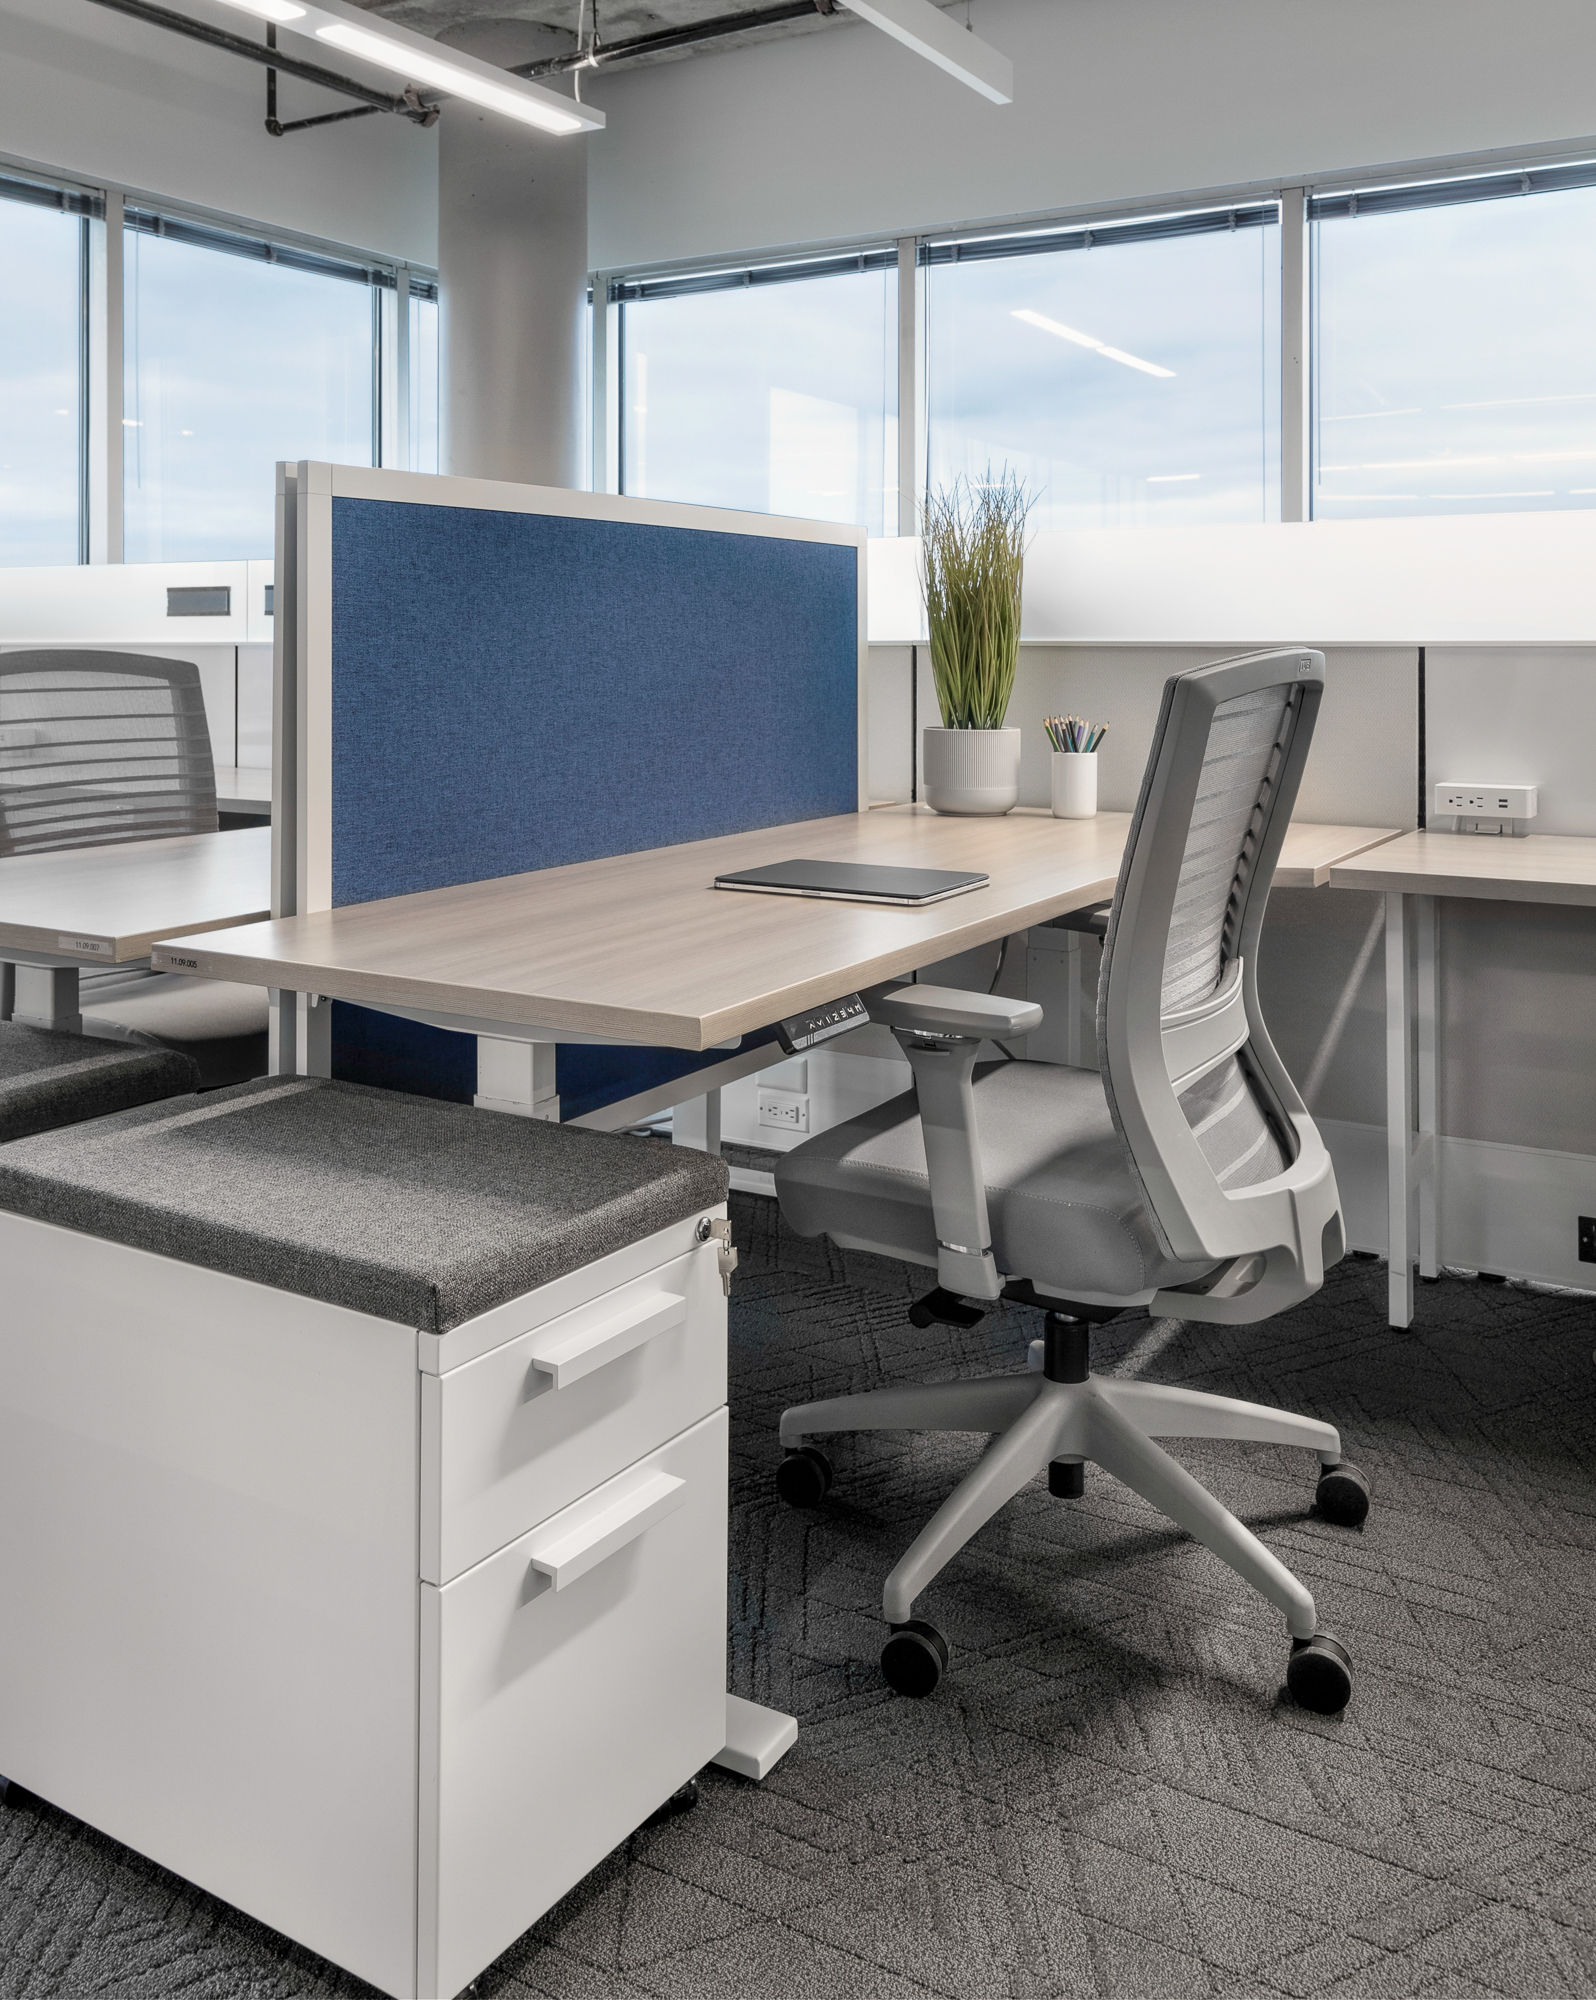 Hieght adjustable with privacy screens and L series storage, matrix panels and natick seating